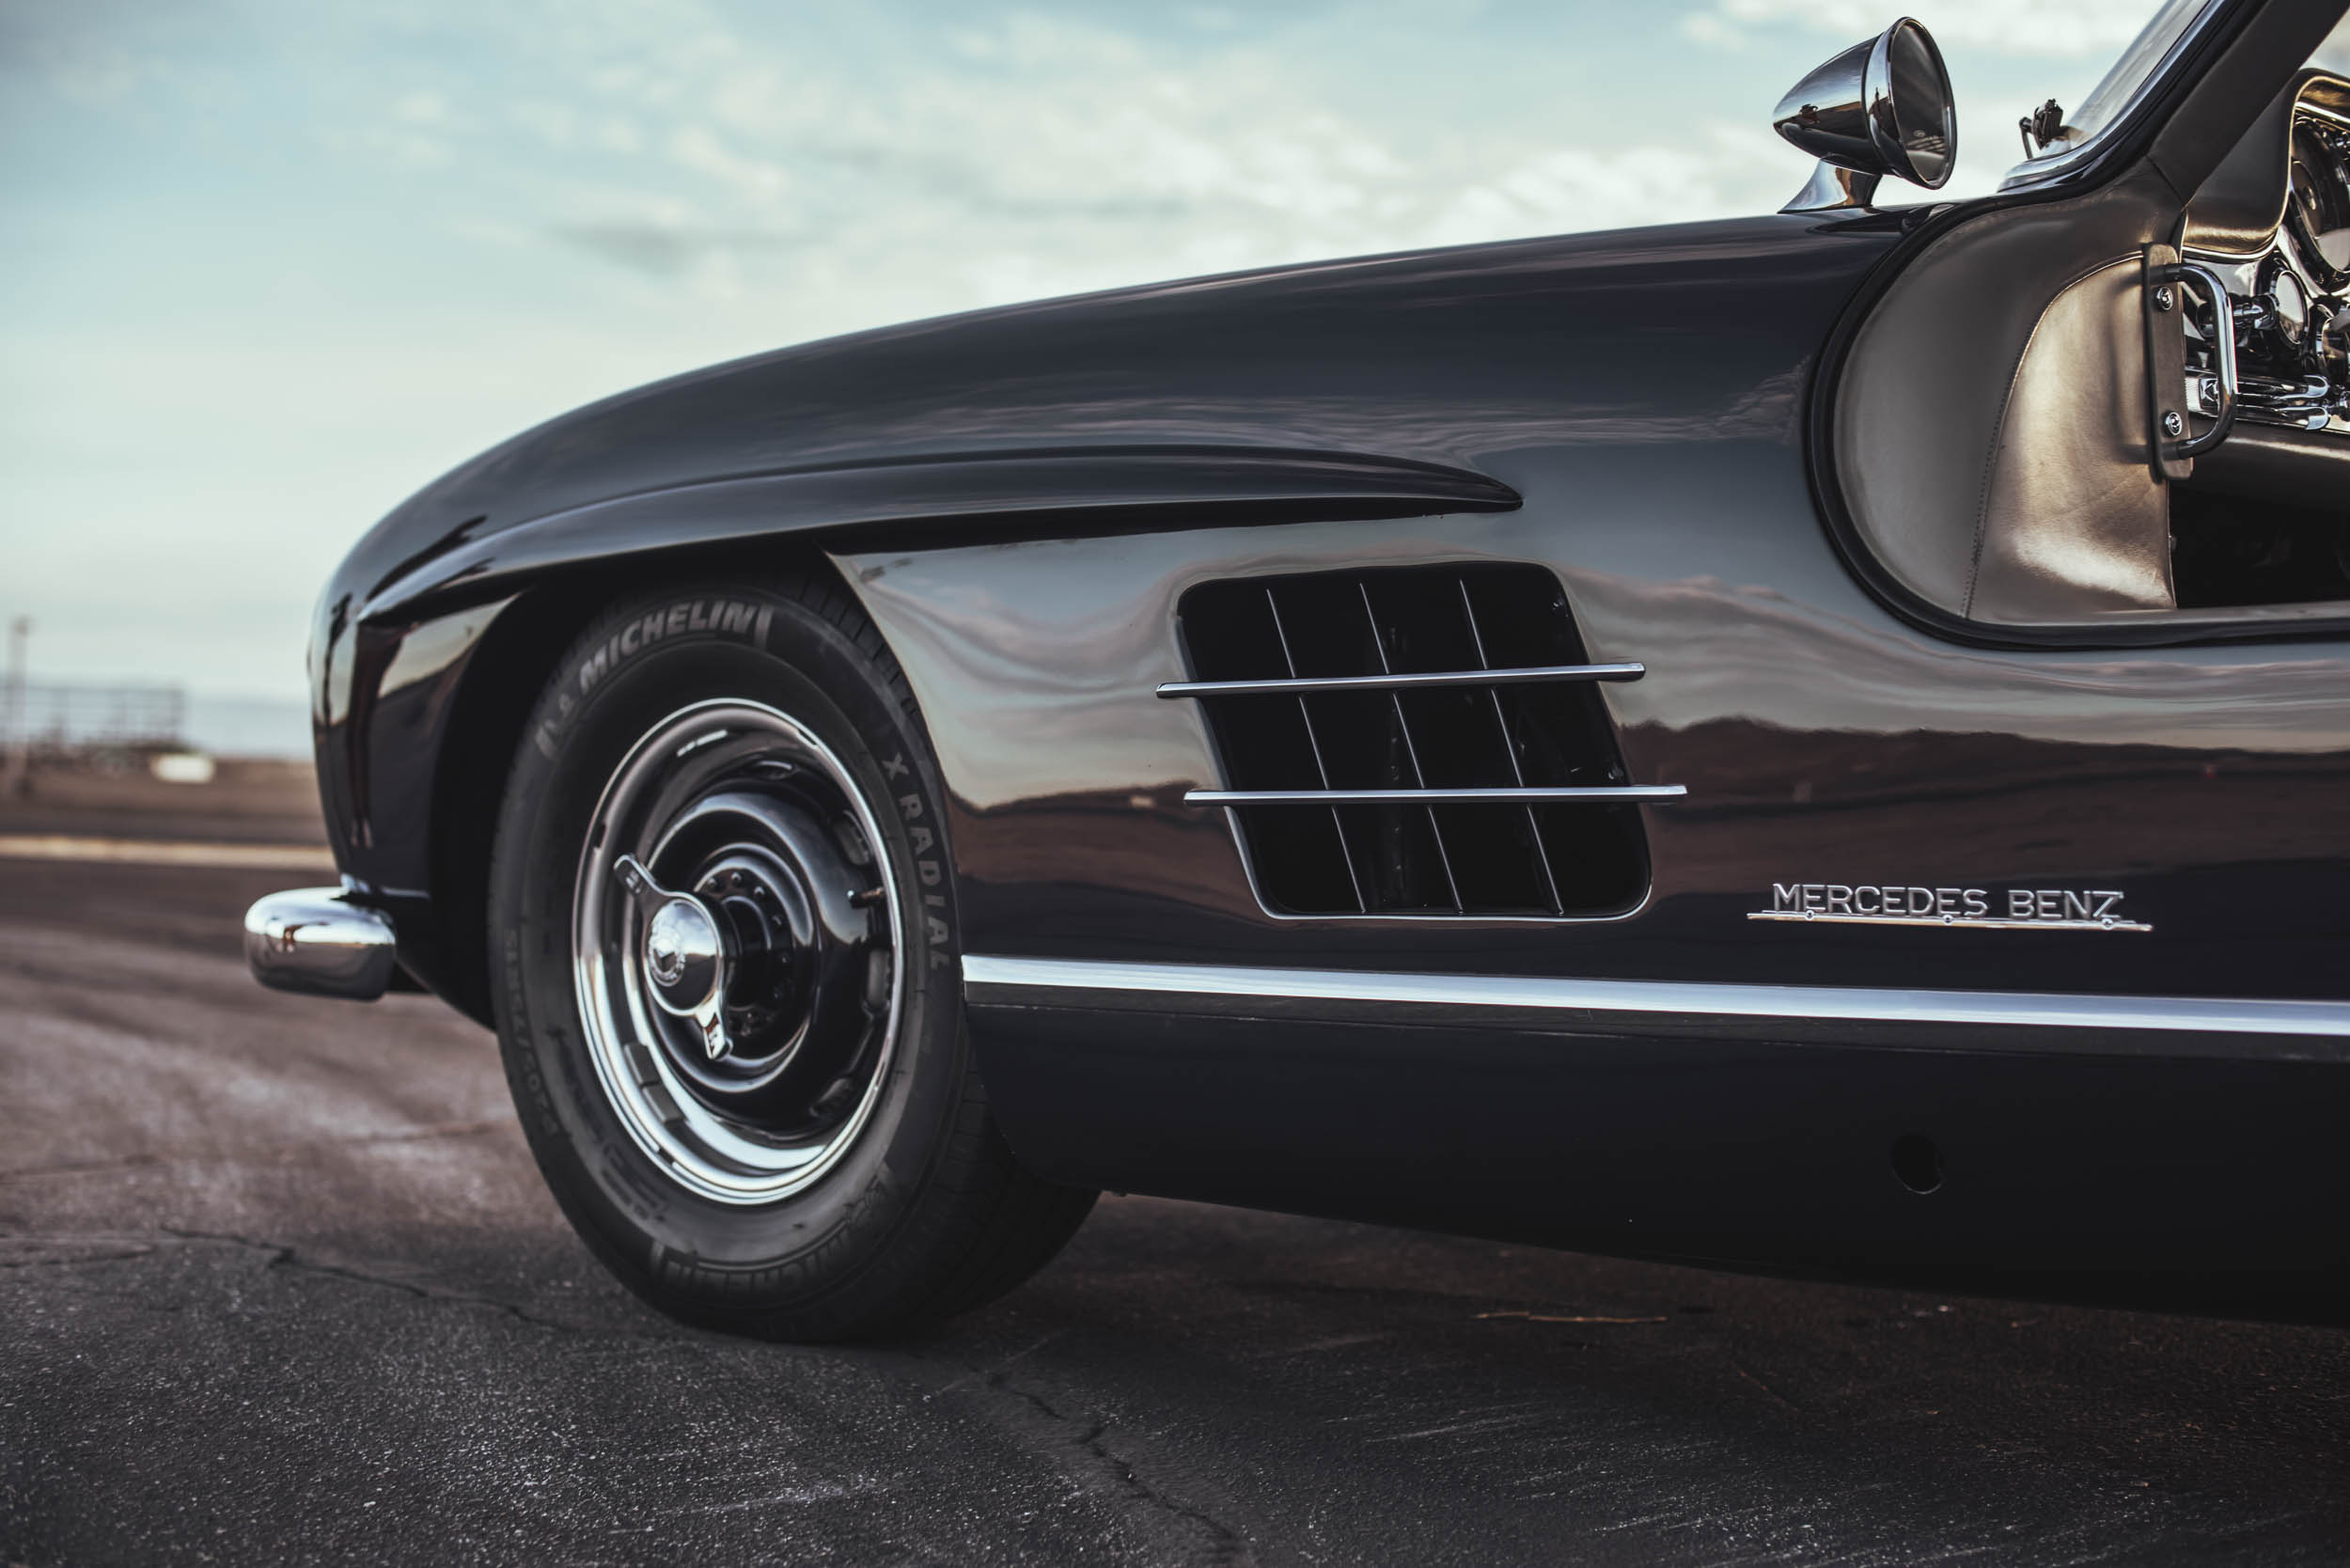 1955 Mercedes-Benz 300 SL Gullwing side vents